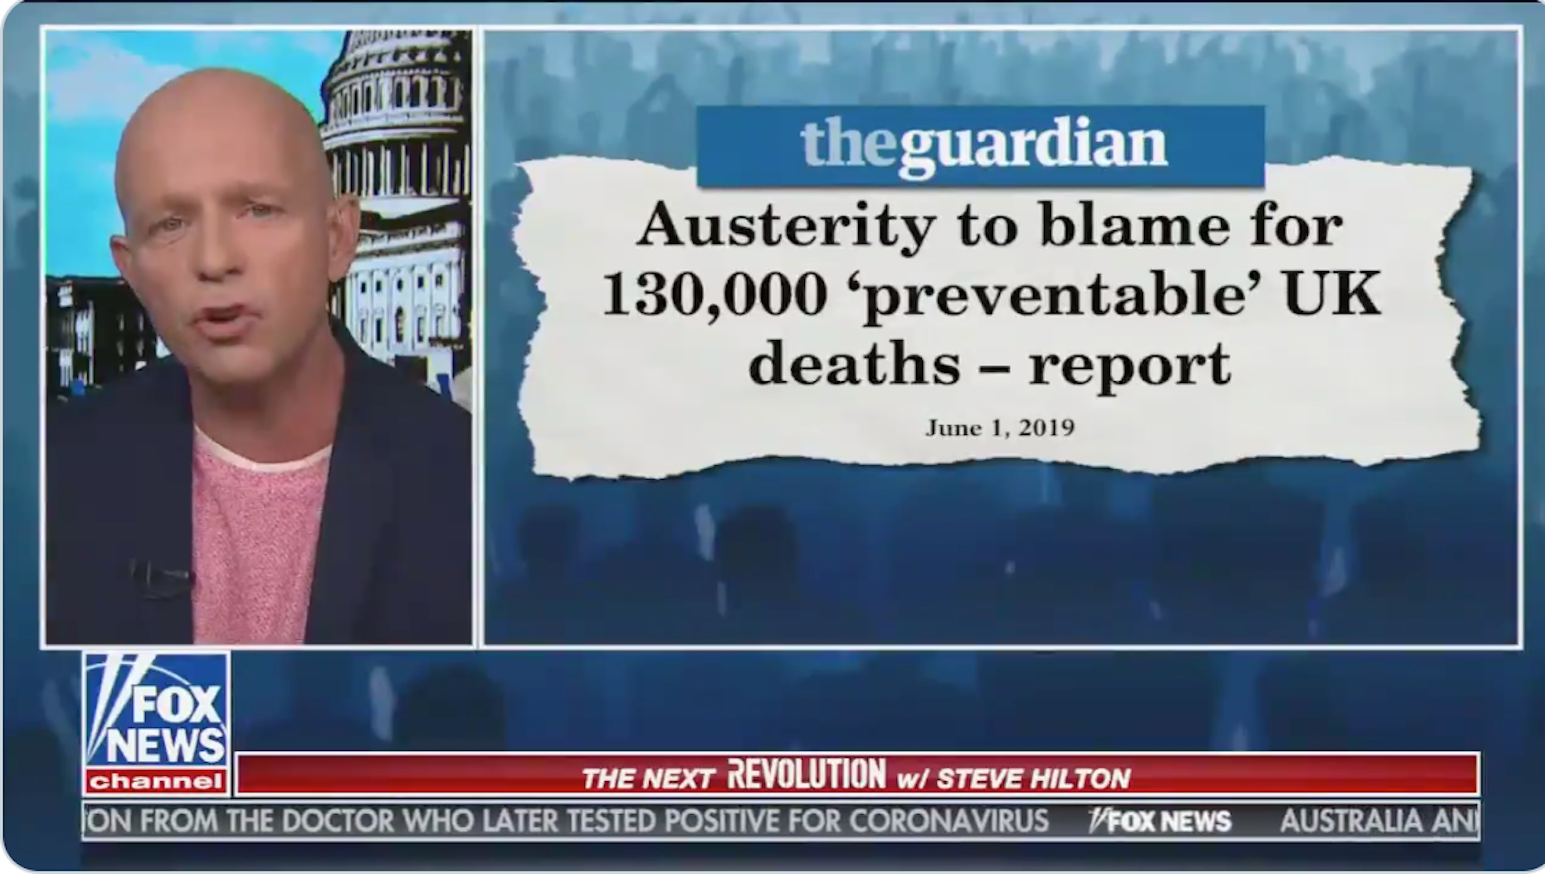 David Cameron's chief adviser just said austerity caused 130,000 avoidable deaths